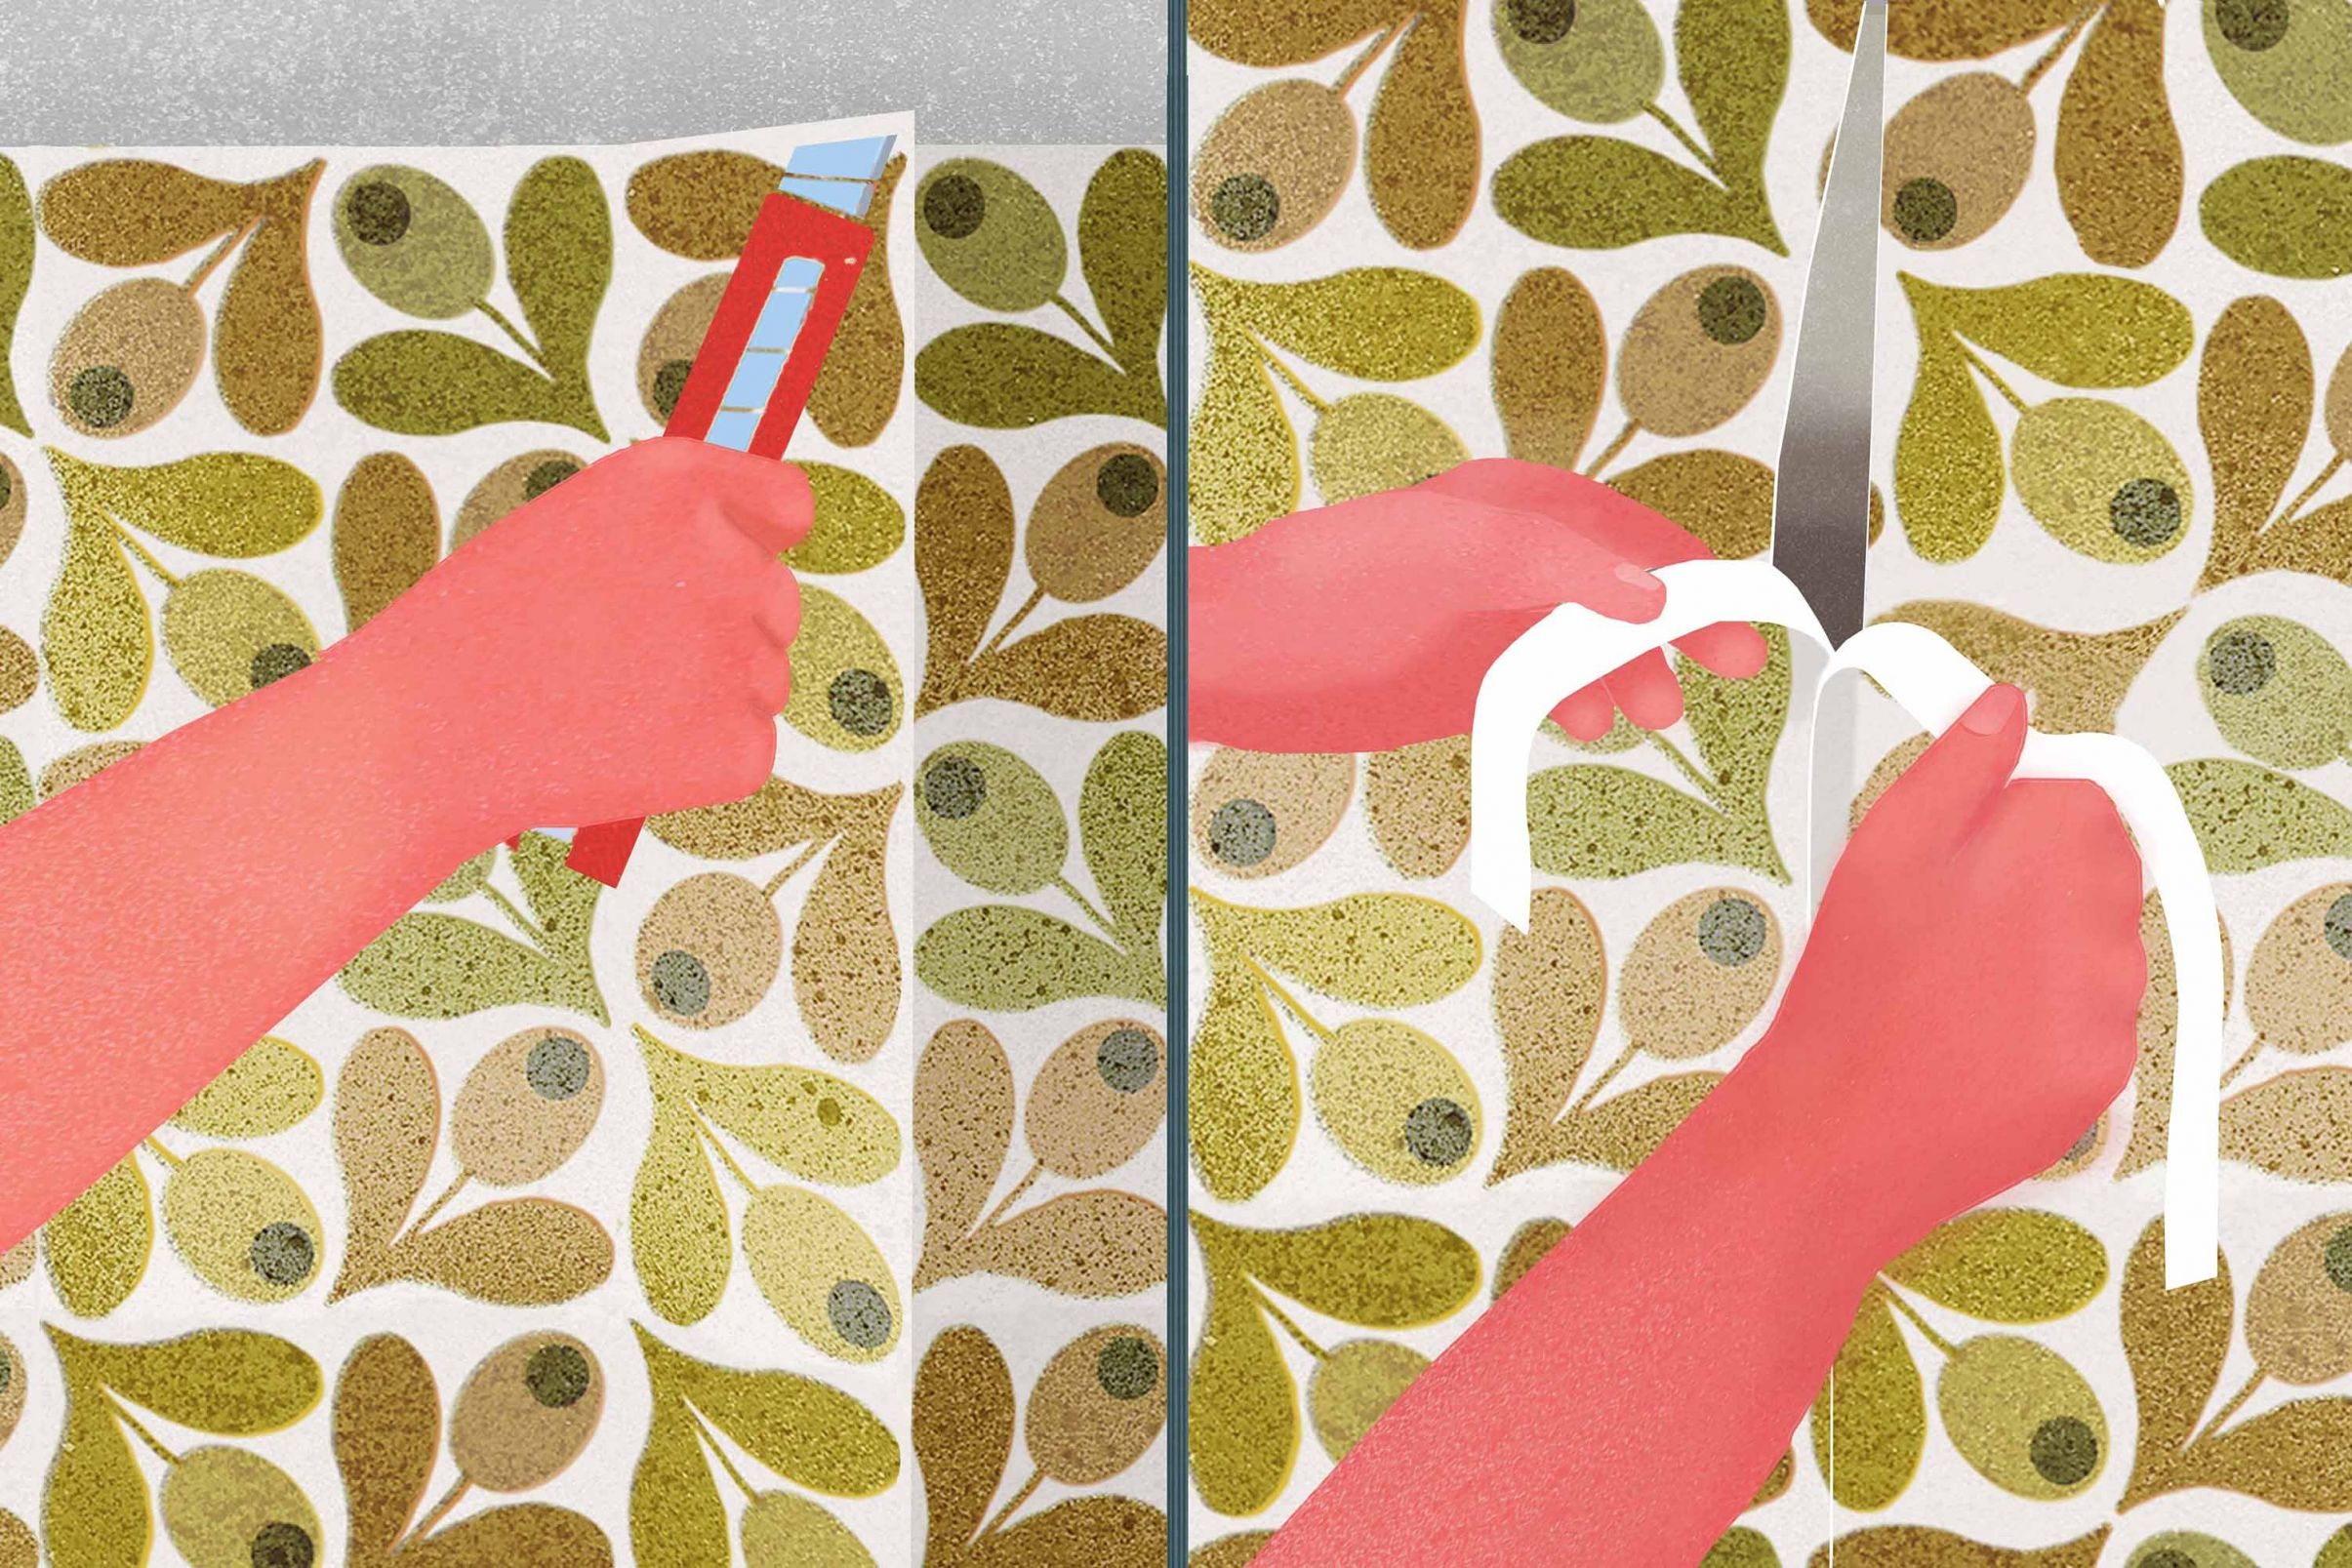 How-to-wallpaper-in-corners-How-to-achieve-the-double-seam-cut